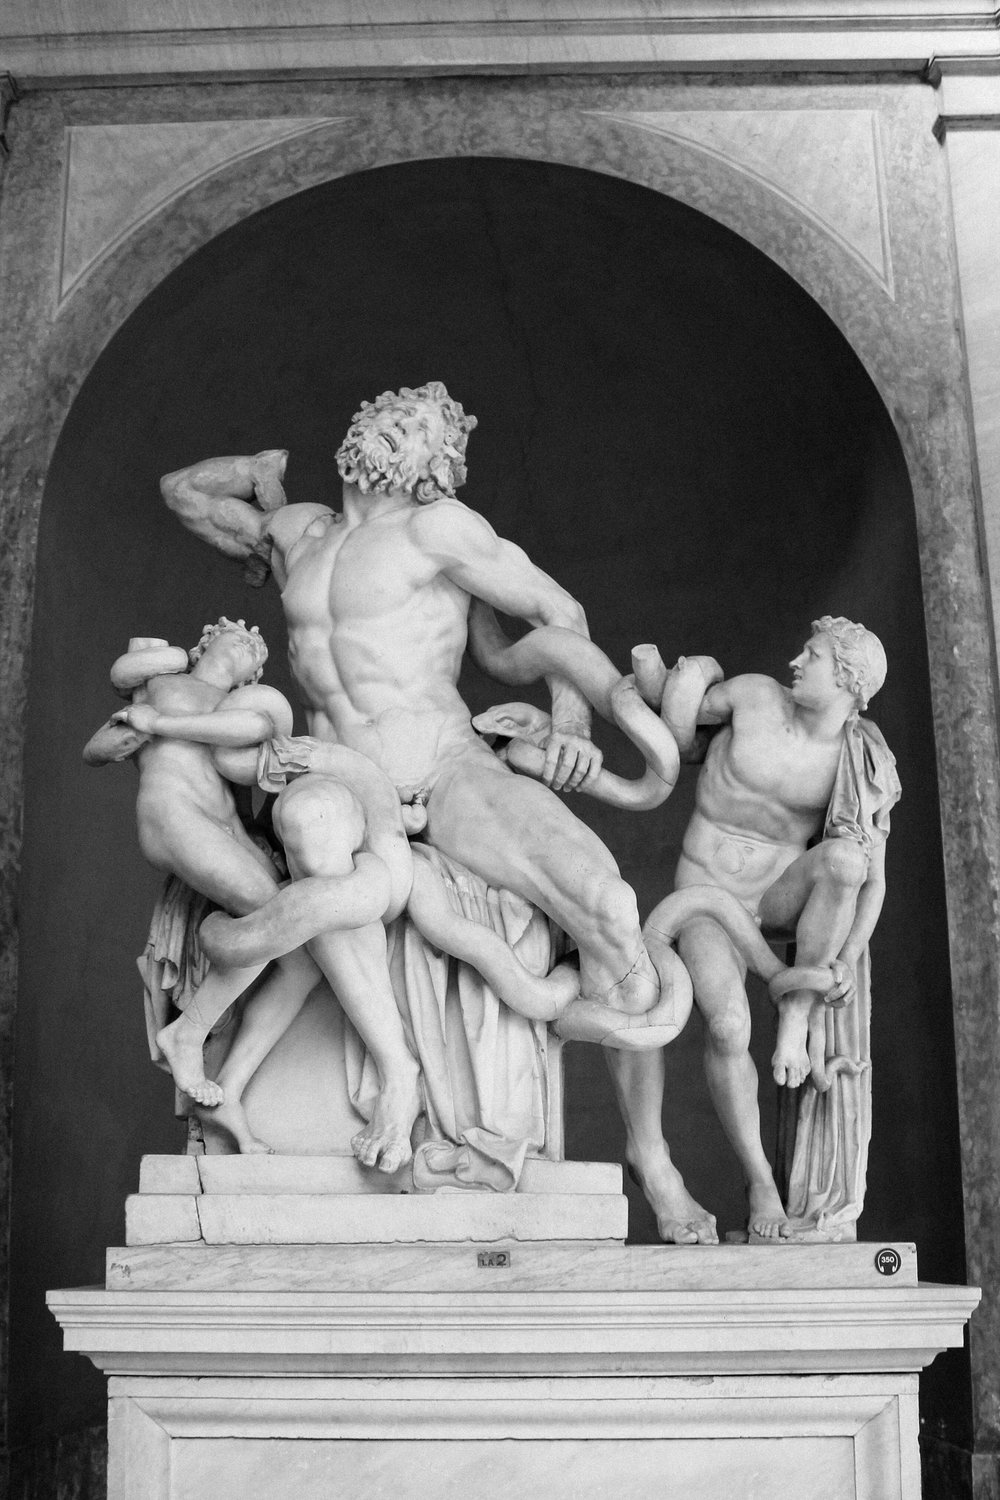 Laocoön and His Sons at the Vatican Museum